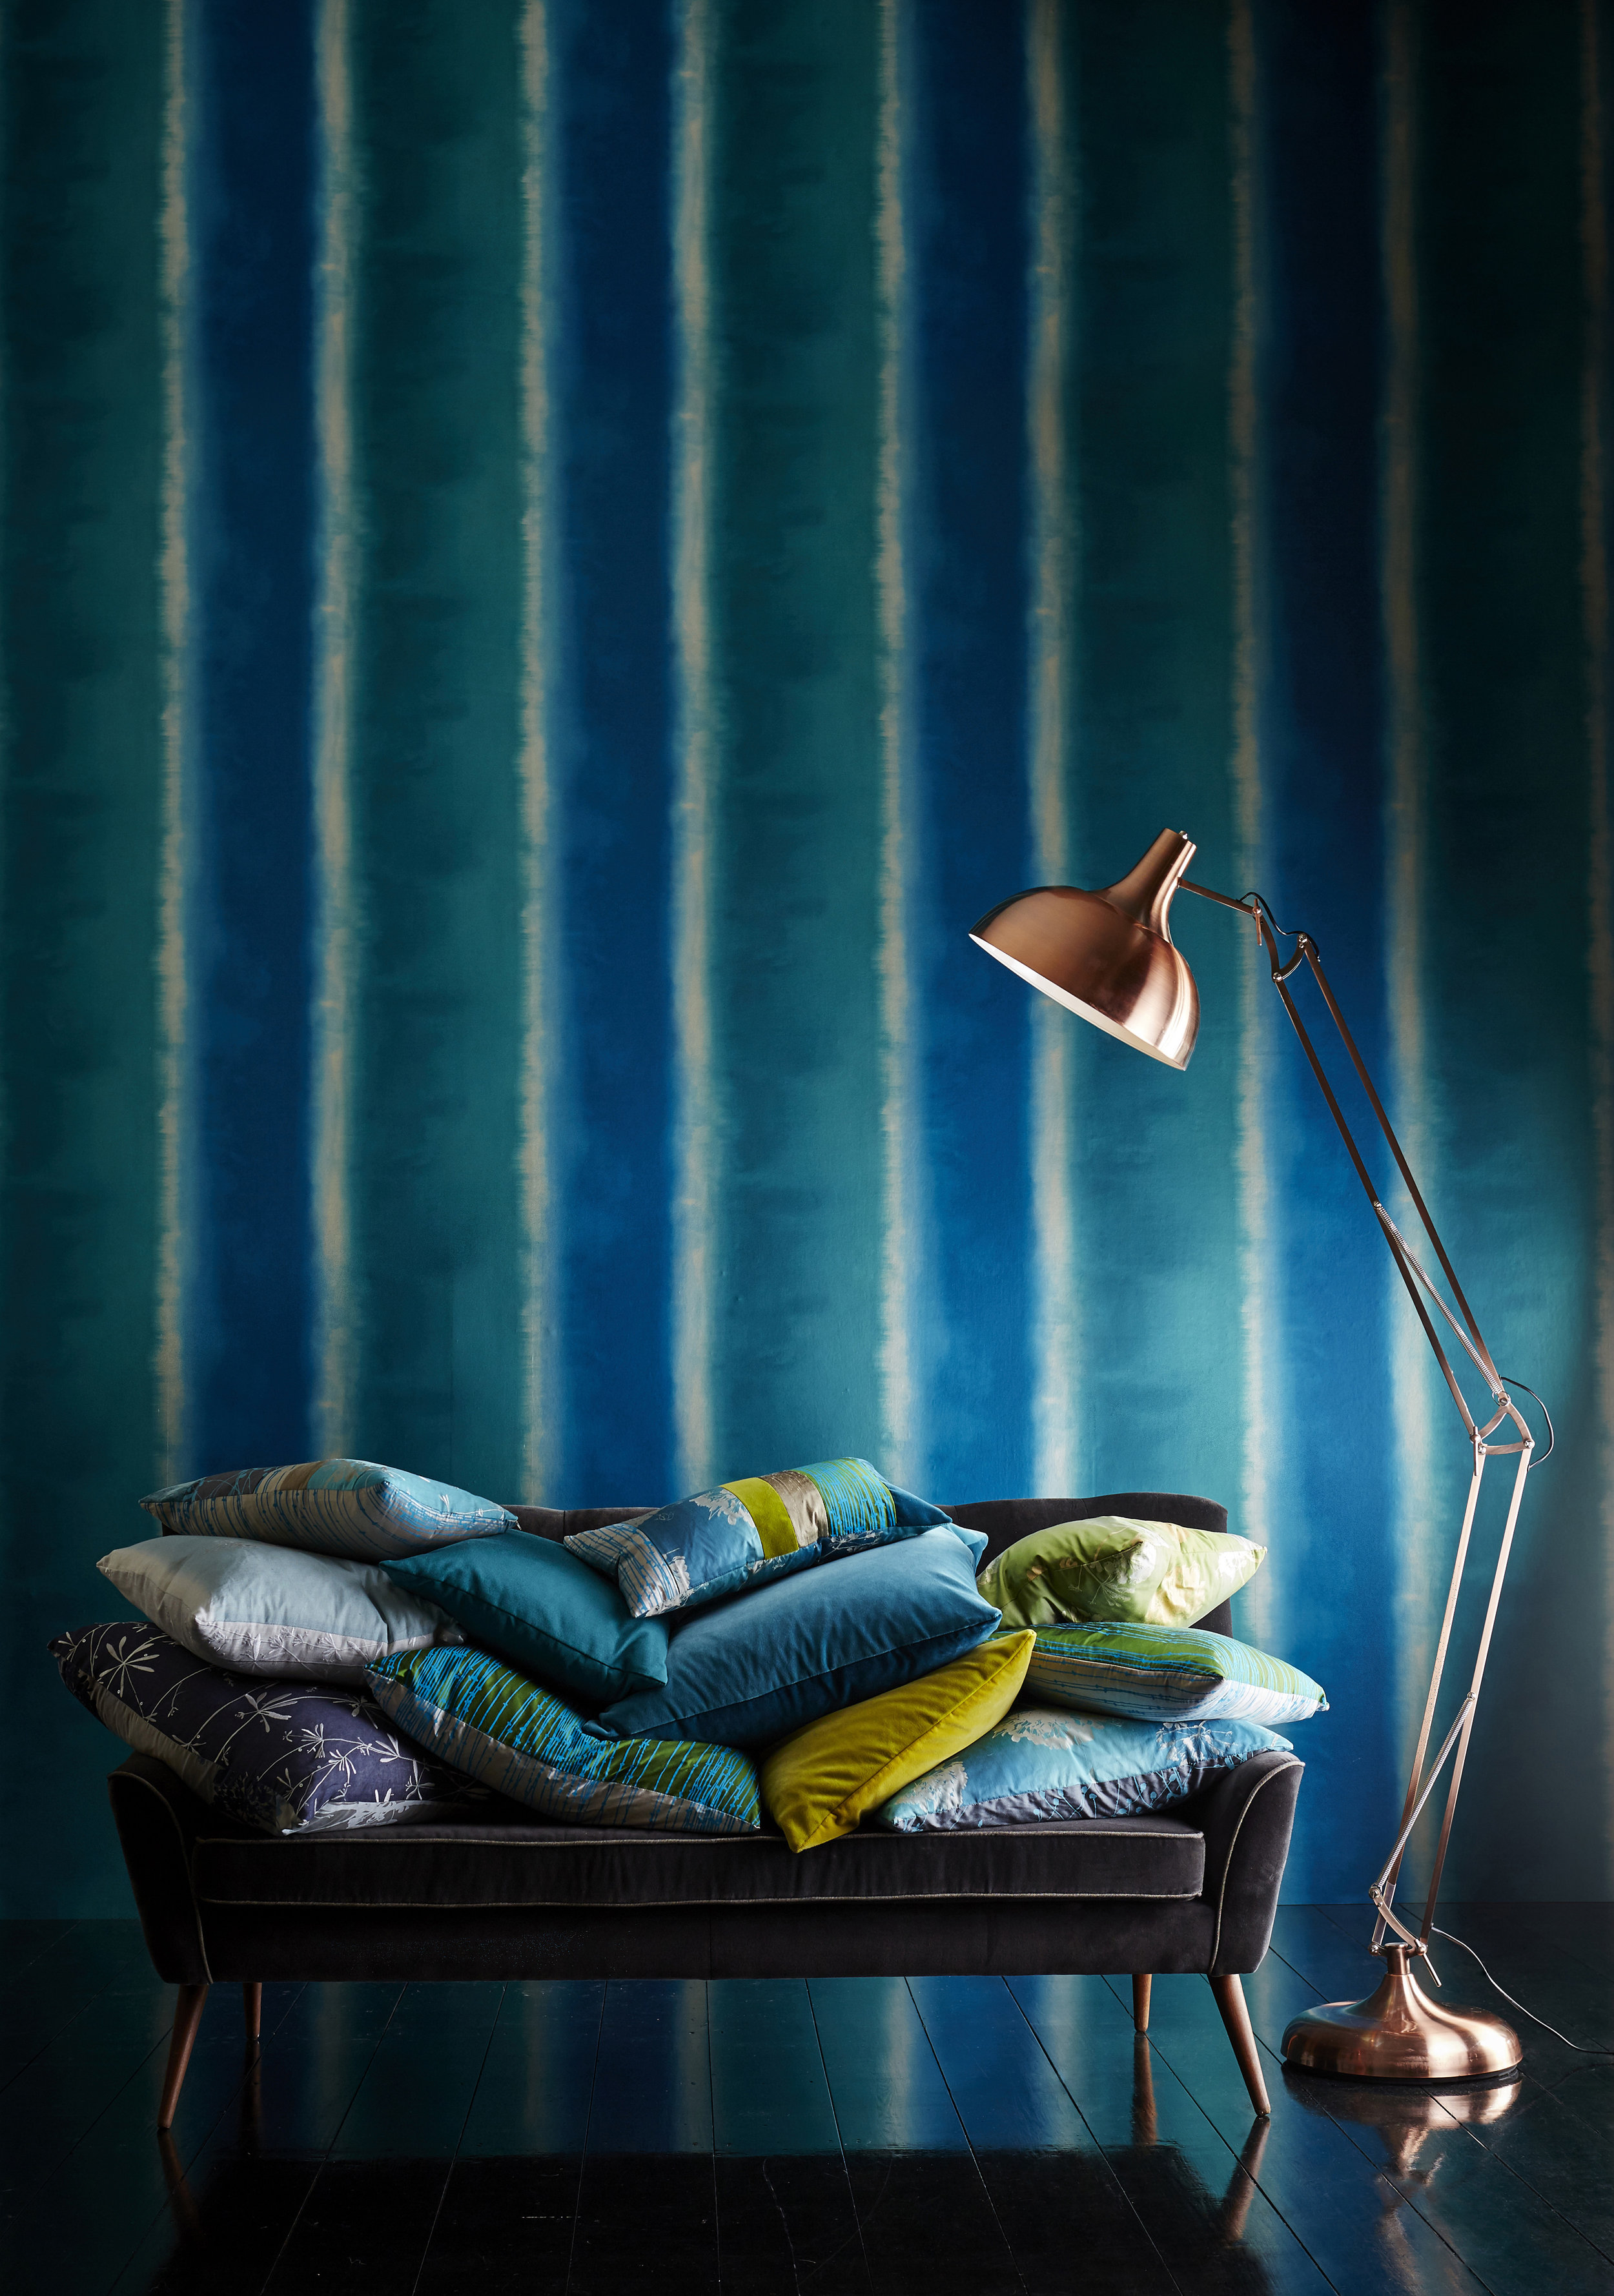 Photograph courtesy of Harlequin Fabrics - Callista range of fabrics and wallpapers